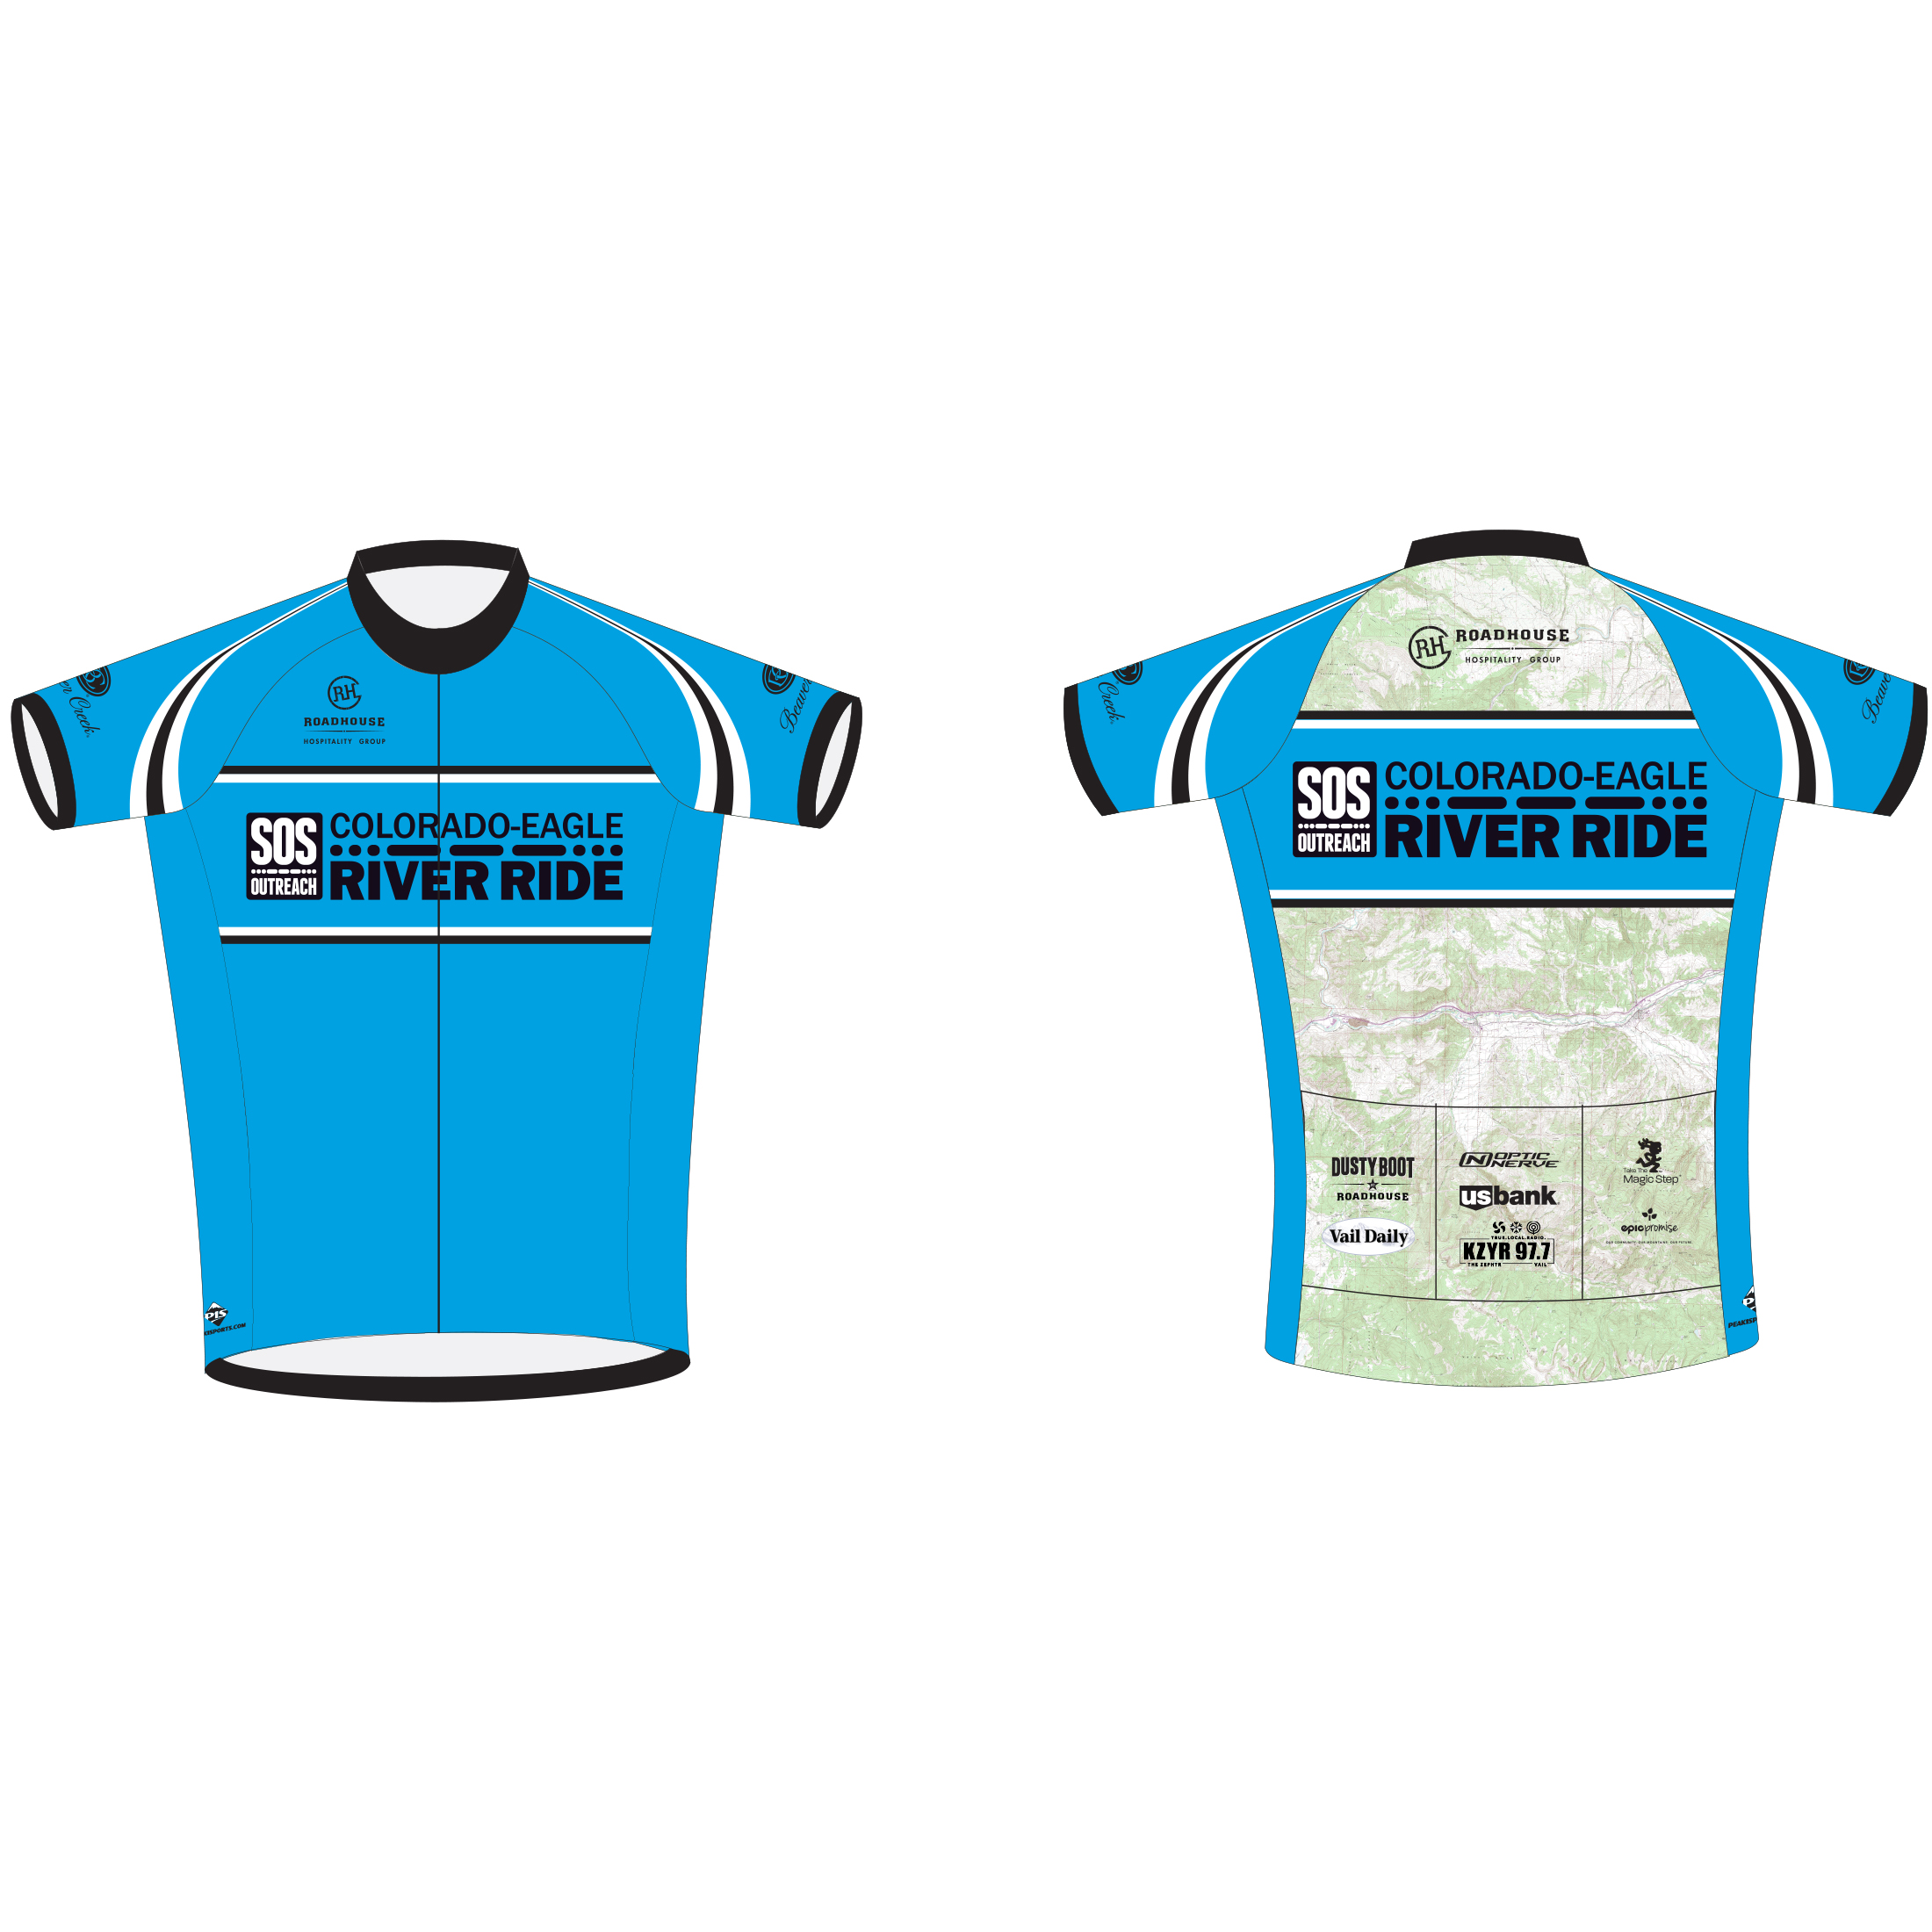 2017 LIMITED EDITION JERSEY